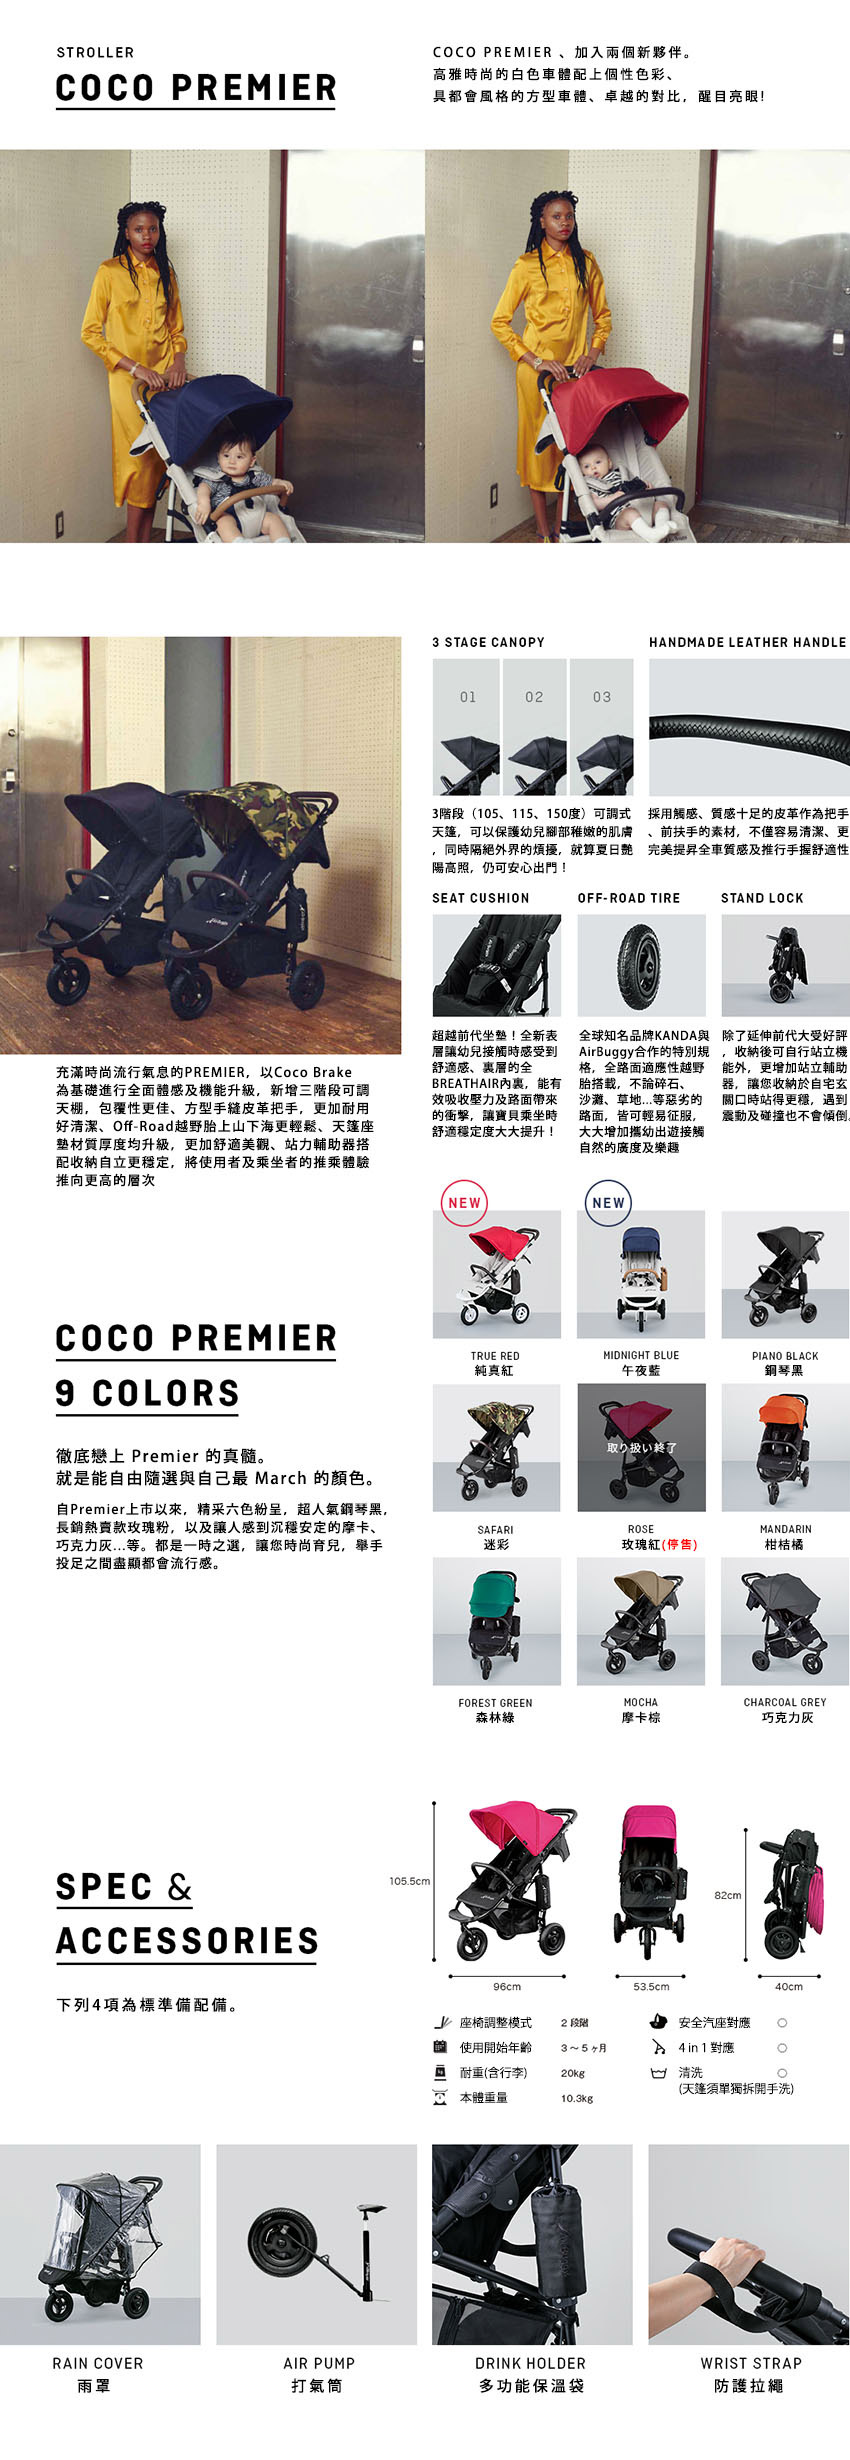 airbuggy_coco_premier_info10